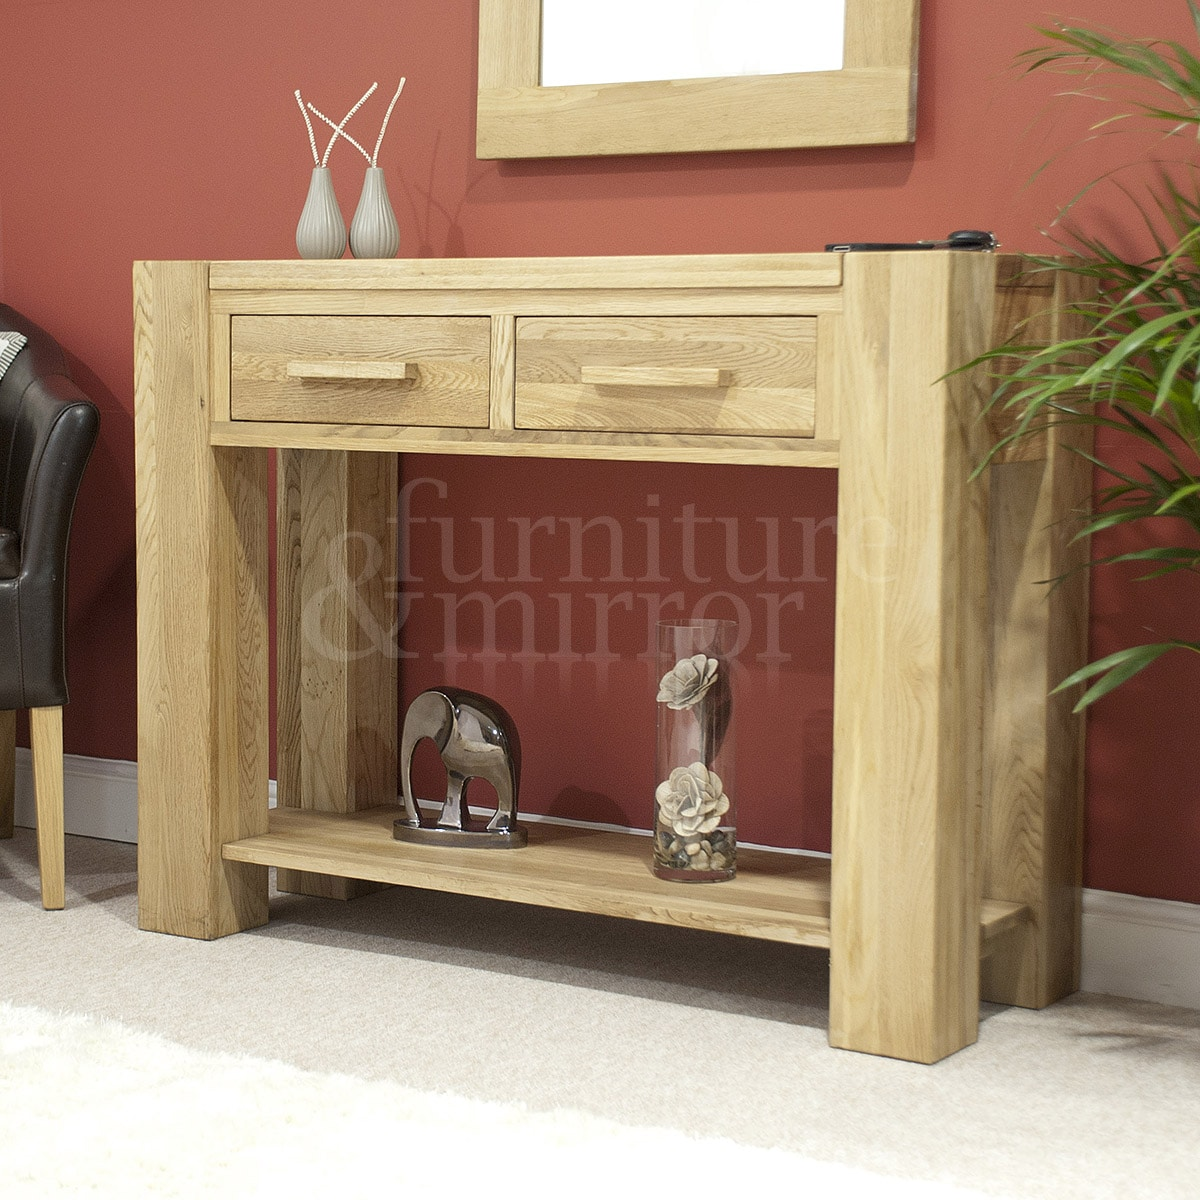 Toulouse hall table furniture and mirror - Best choices for hallway furniture ...